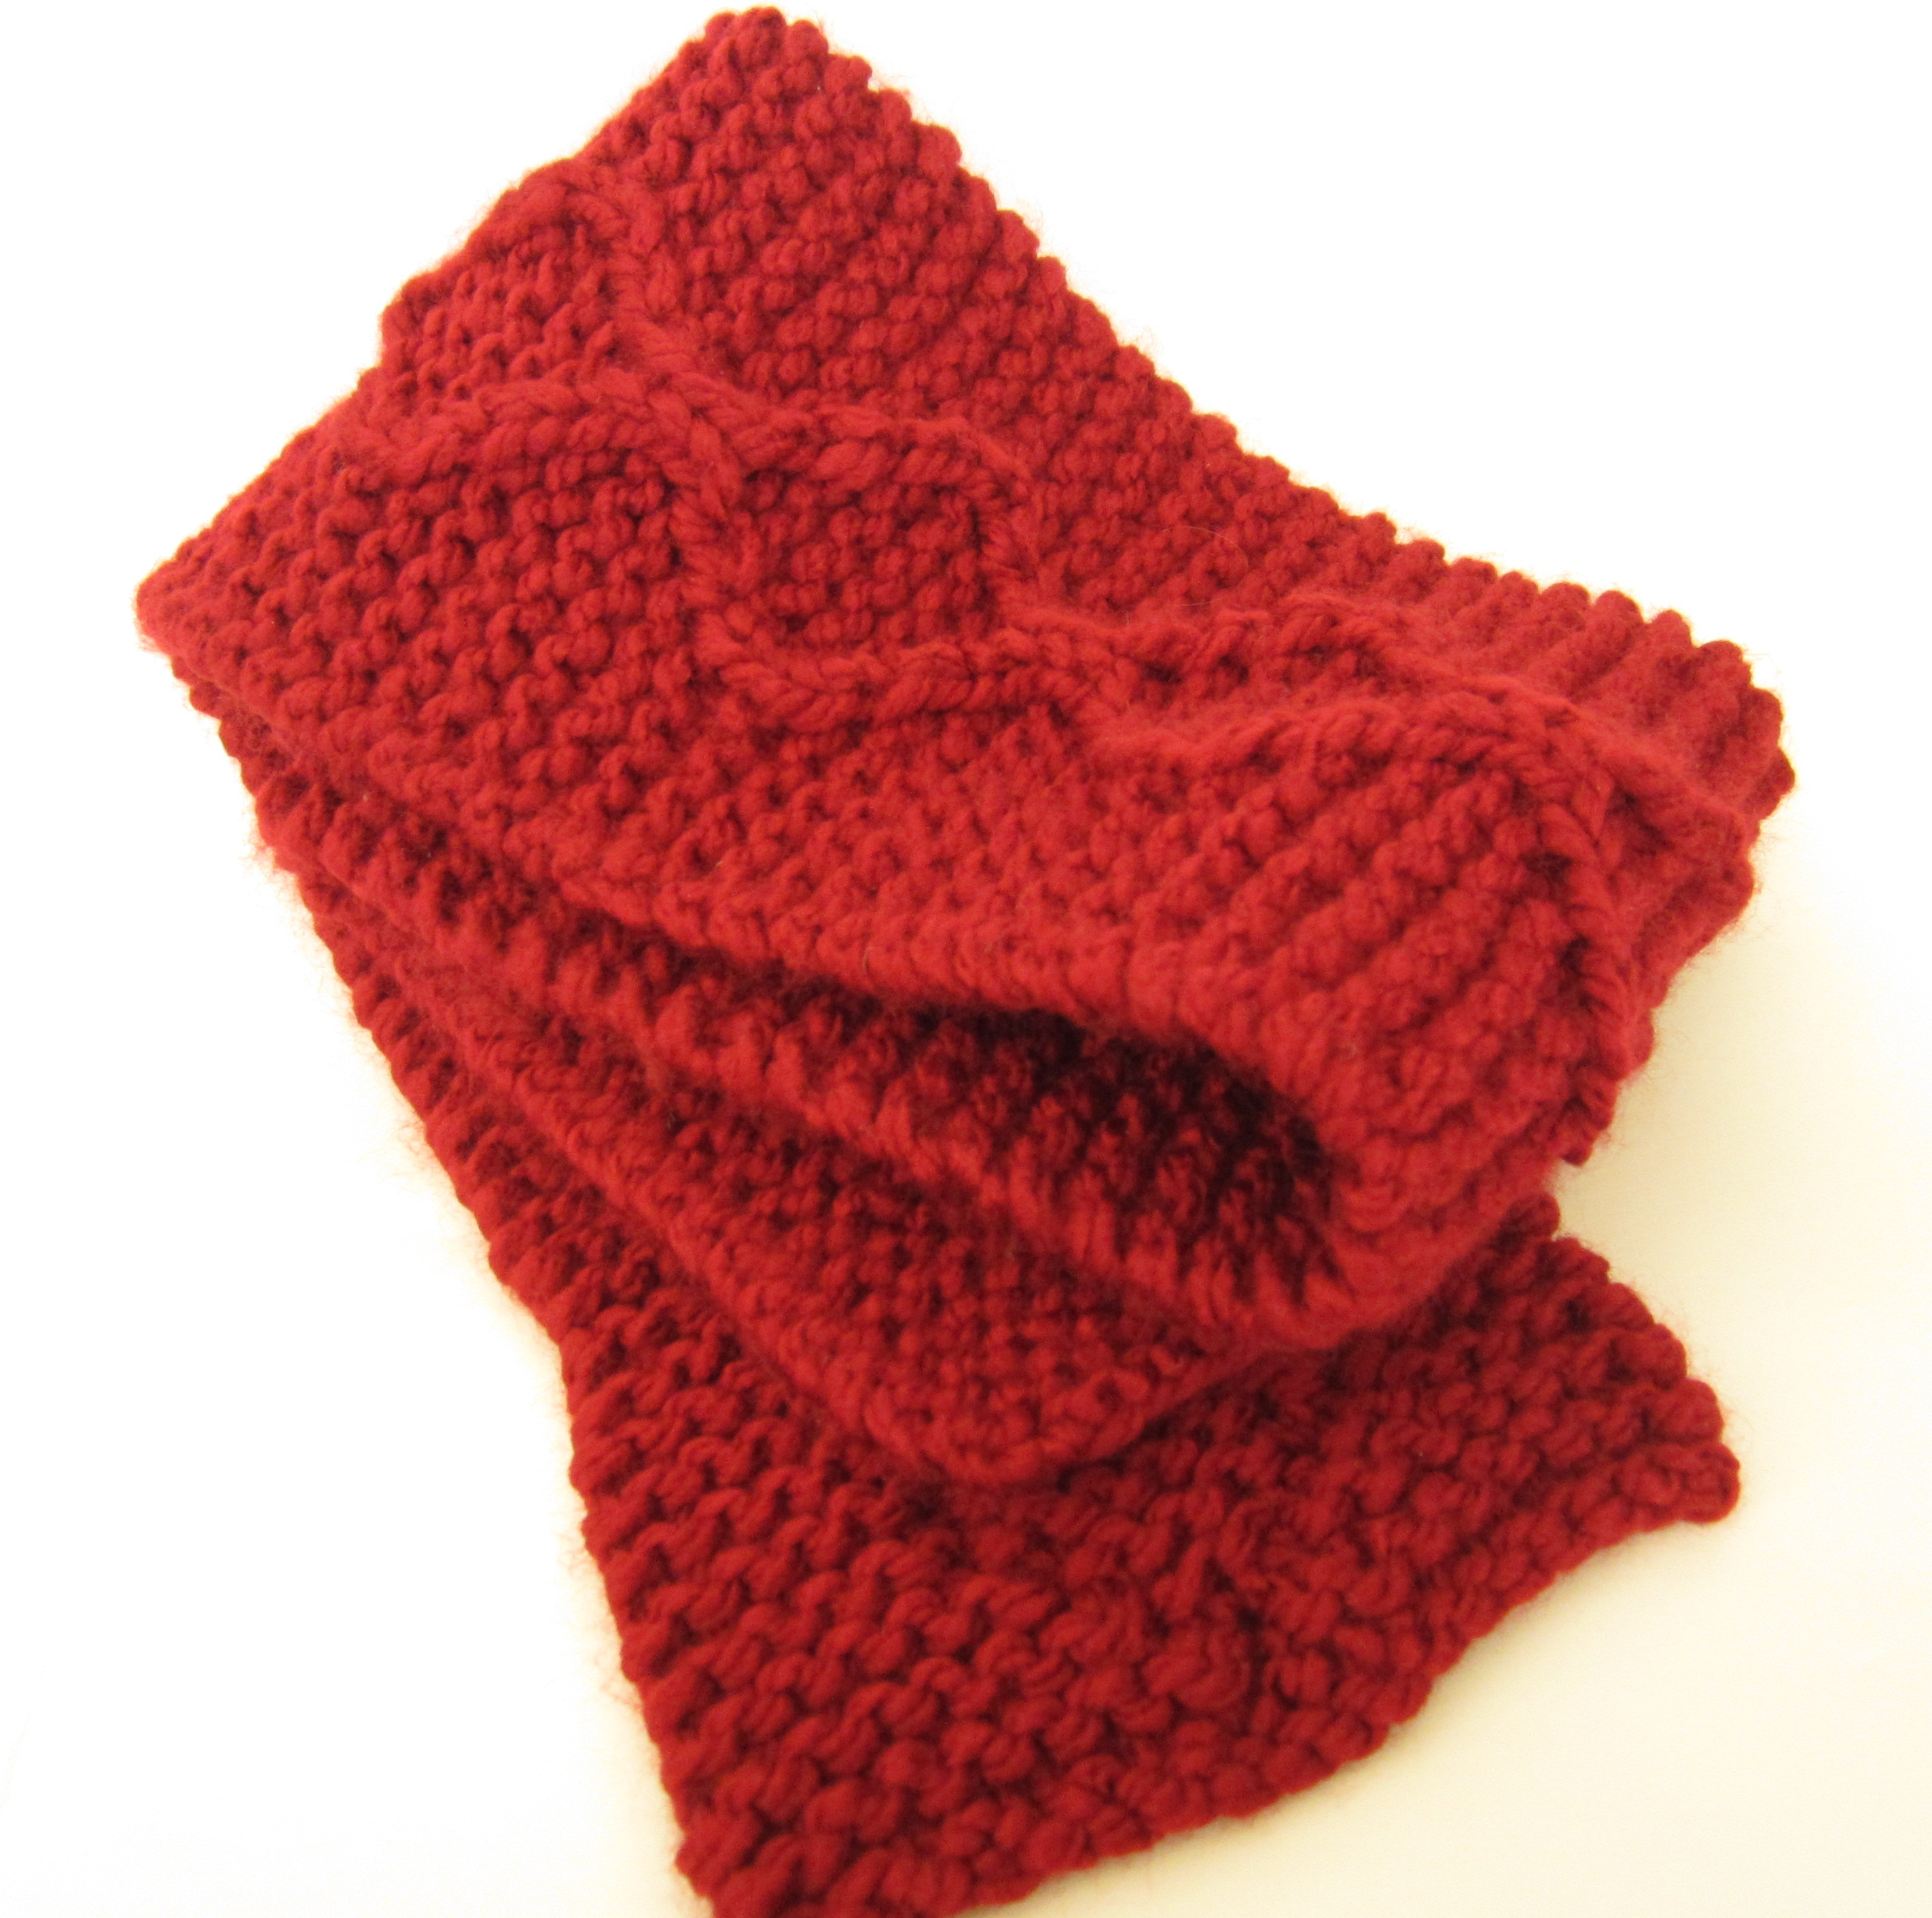 Free Patterns Knitting : Quick Free Knitting Patterns